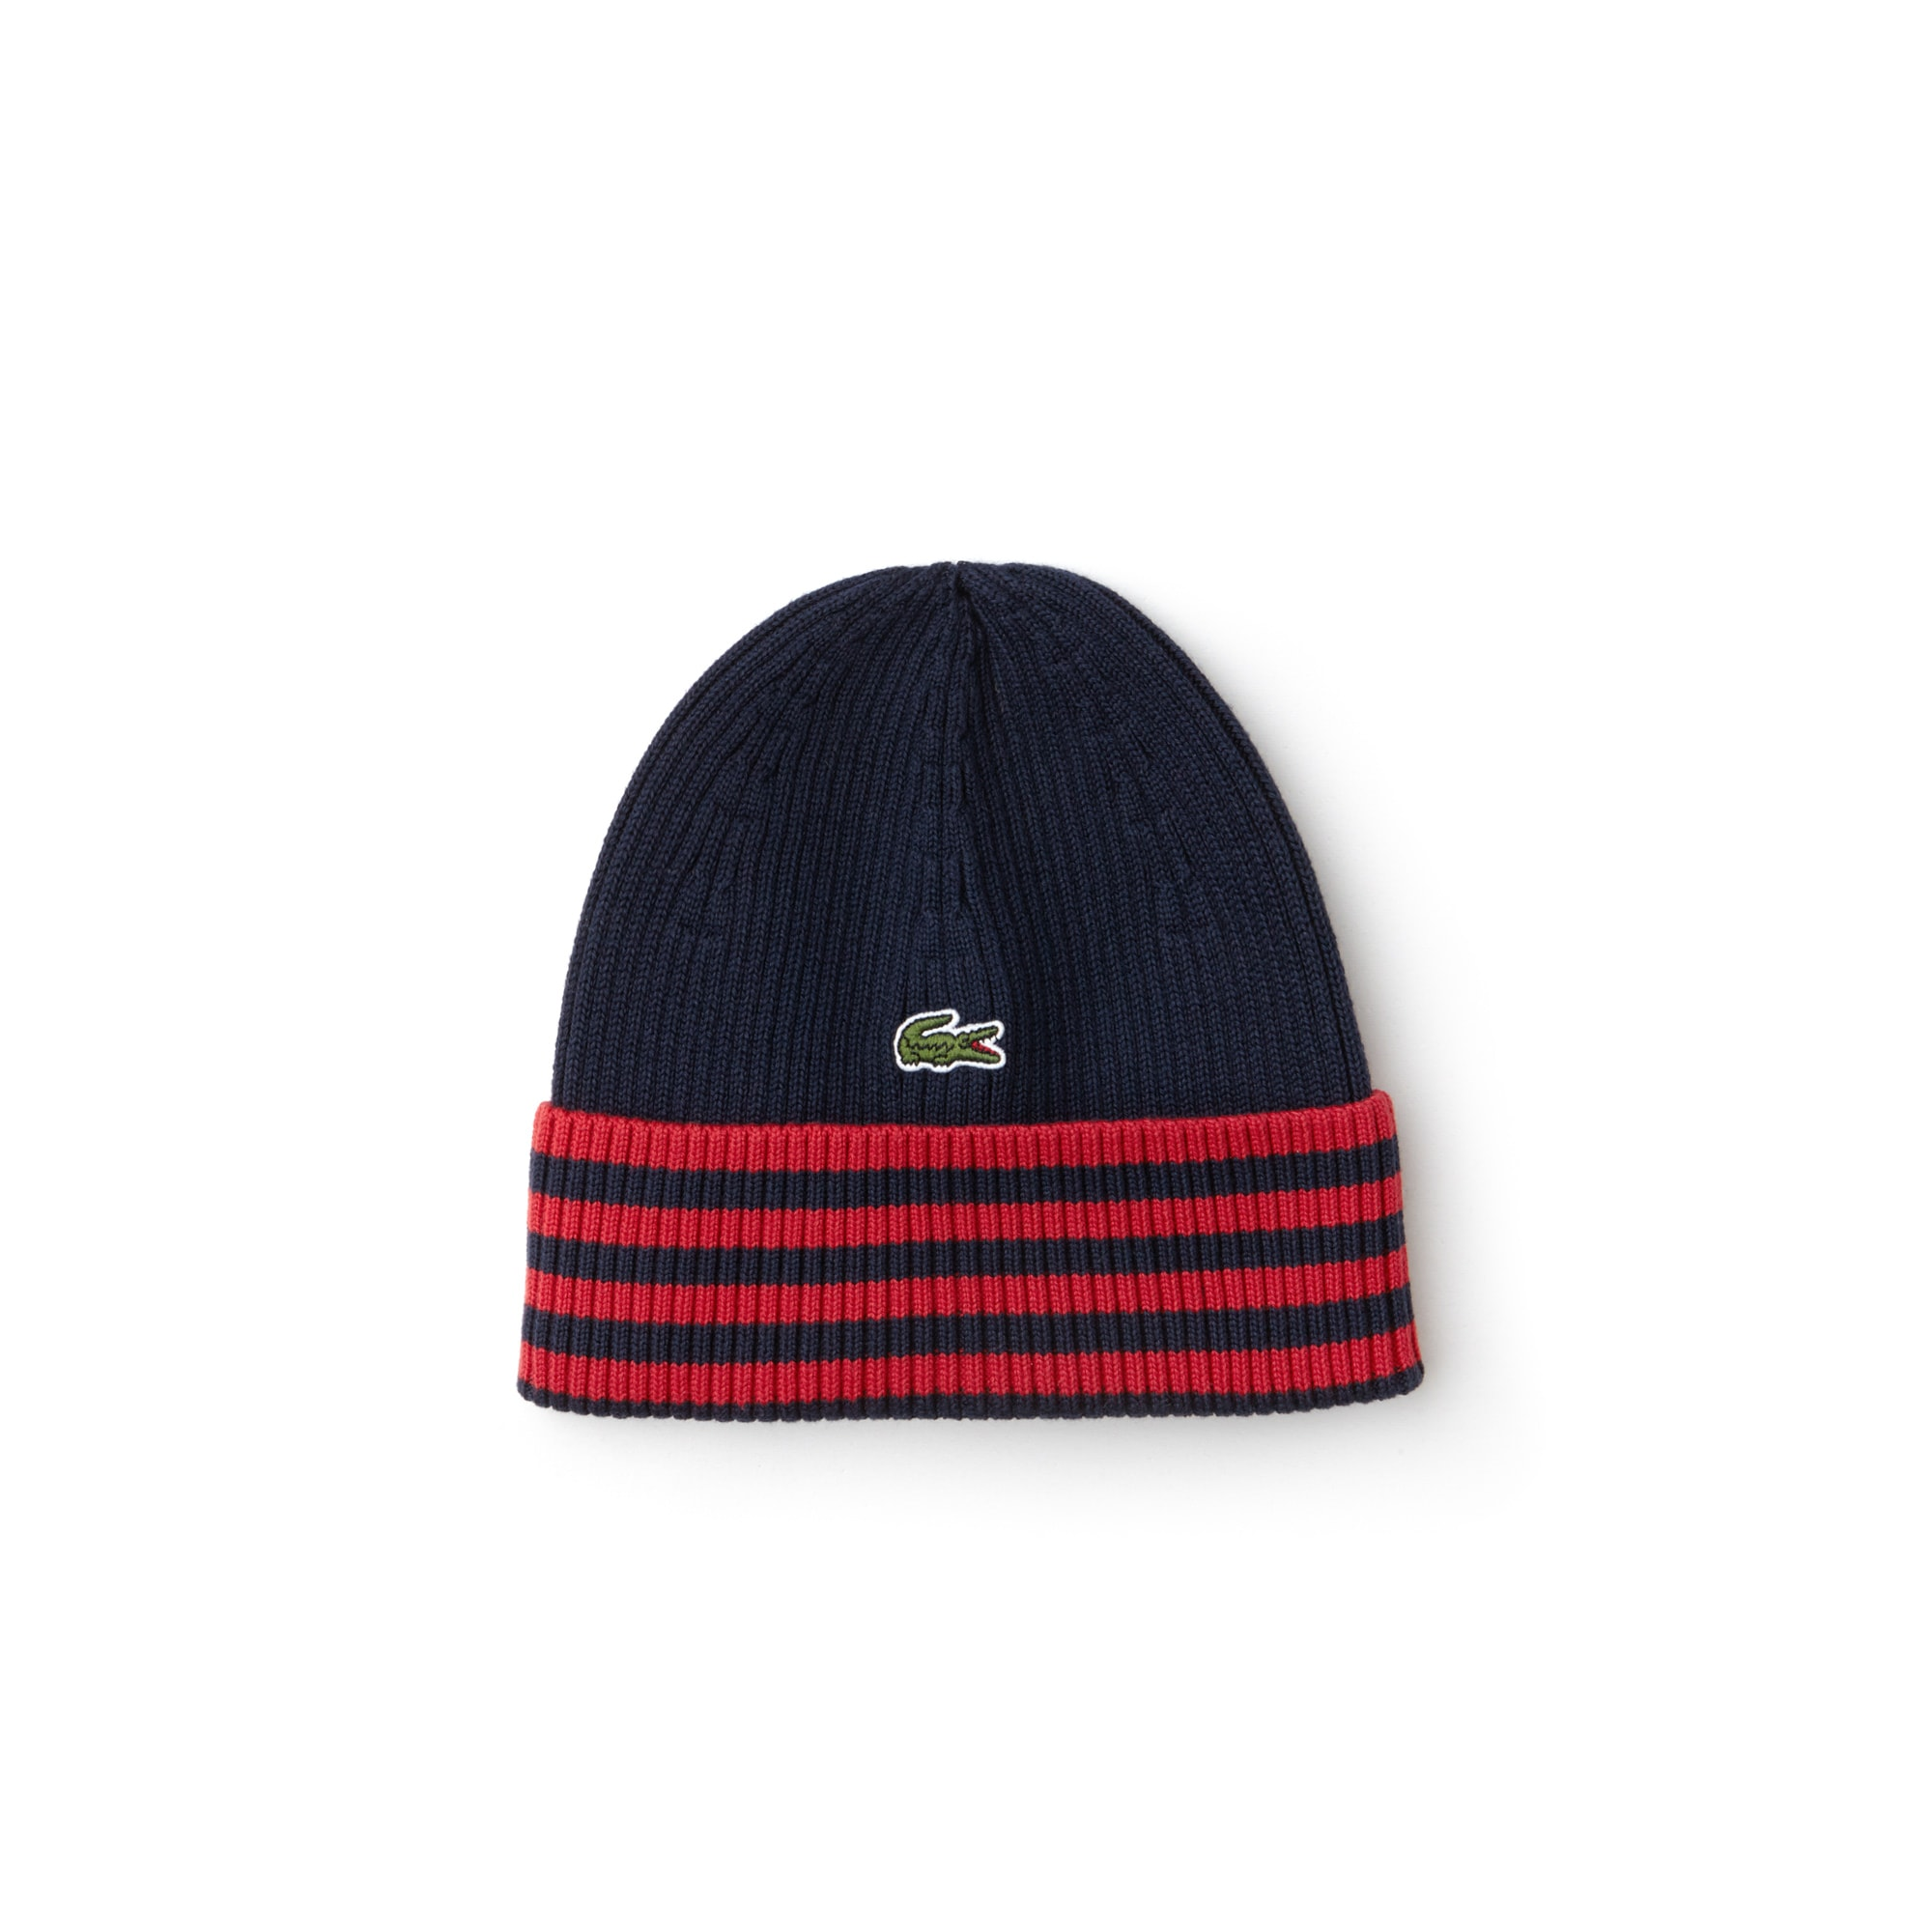 Men's Striped Turned Edge Ribbed Cotton Beanie